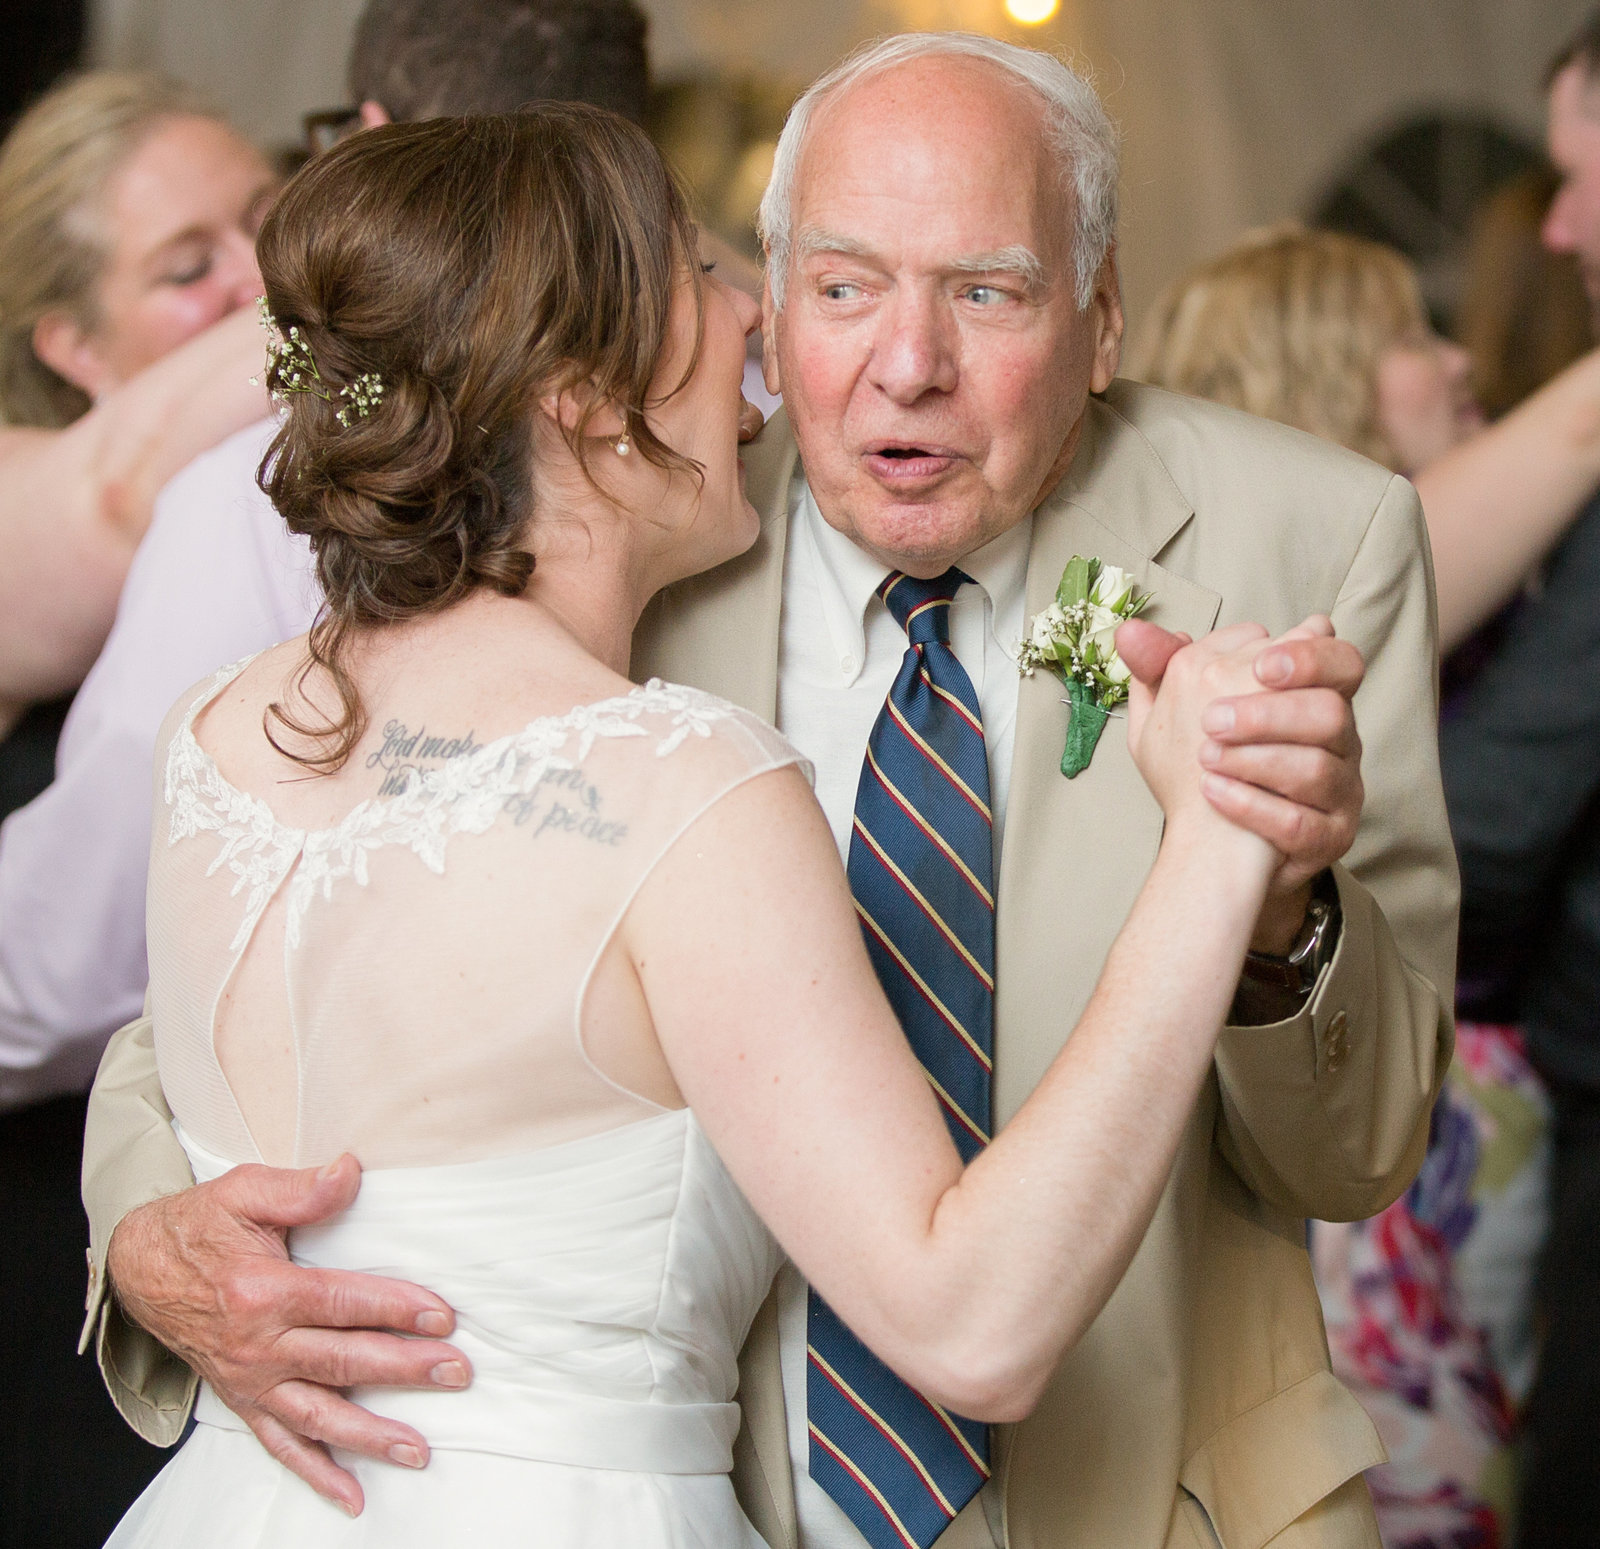 Bride is laughing and dancing with her father in law at National Aviary wedding reception